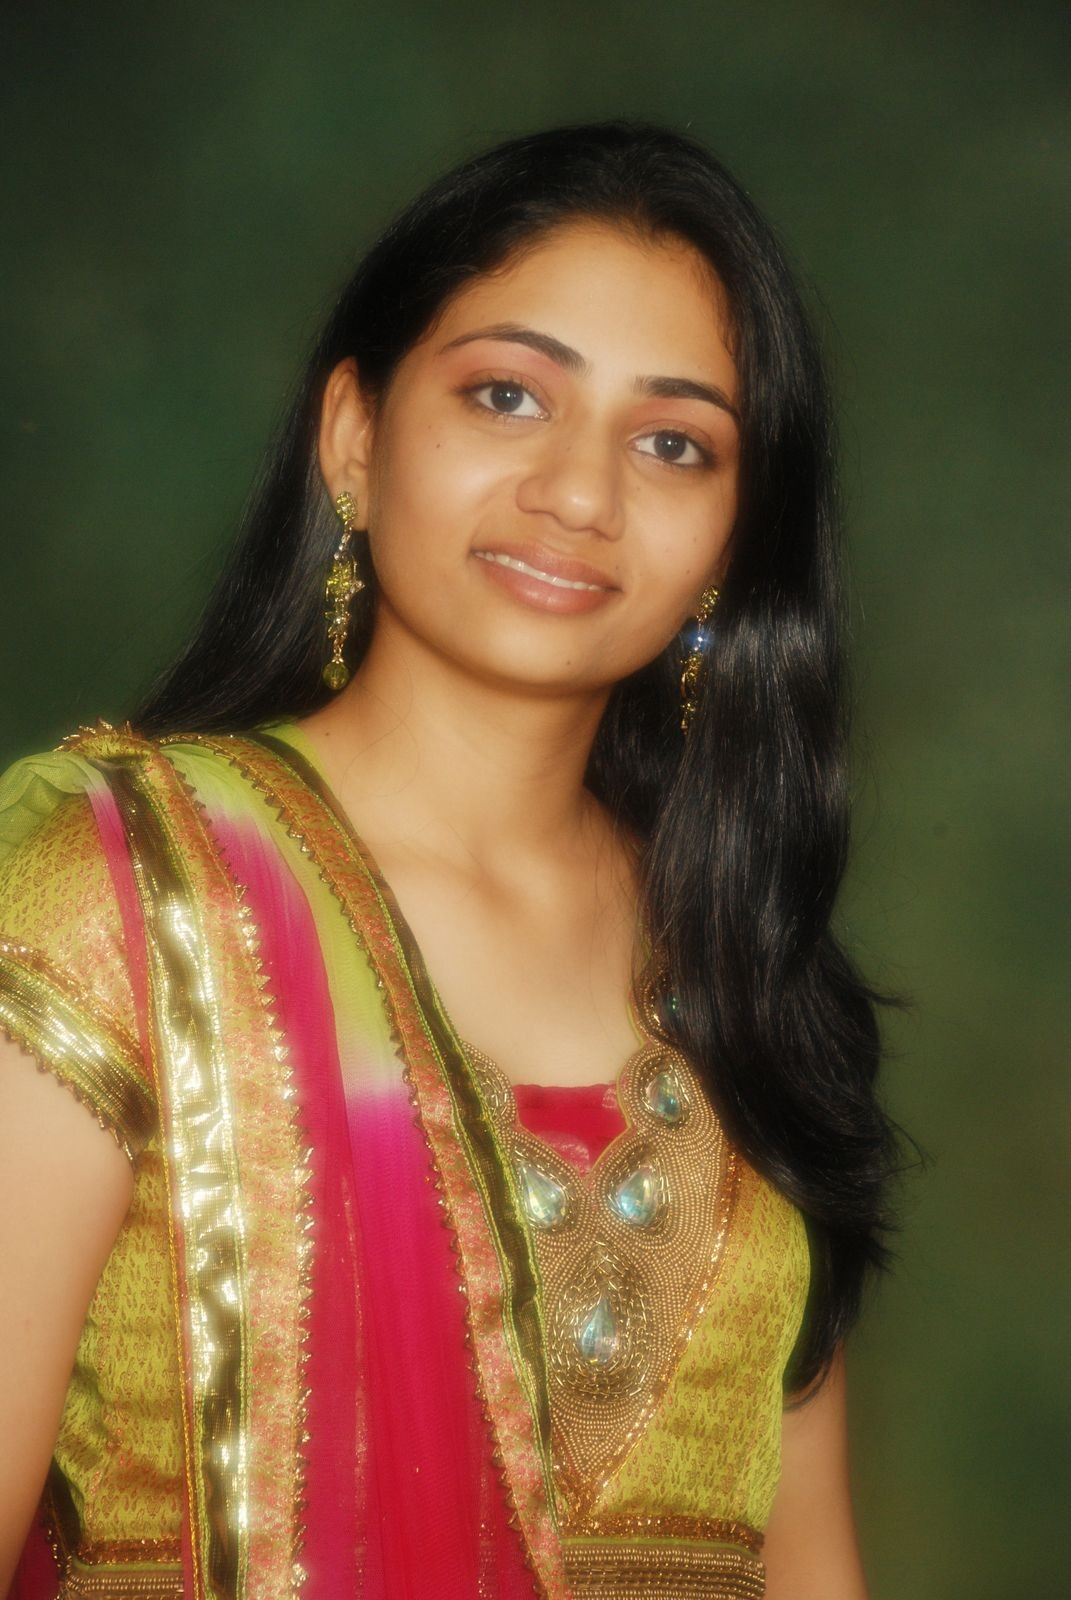 Desi girl with cute structure